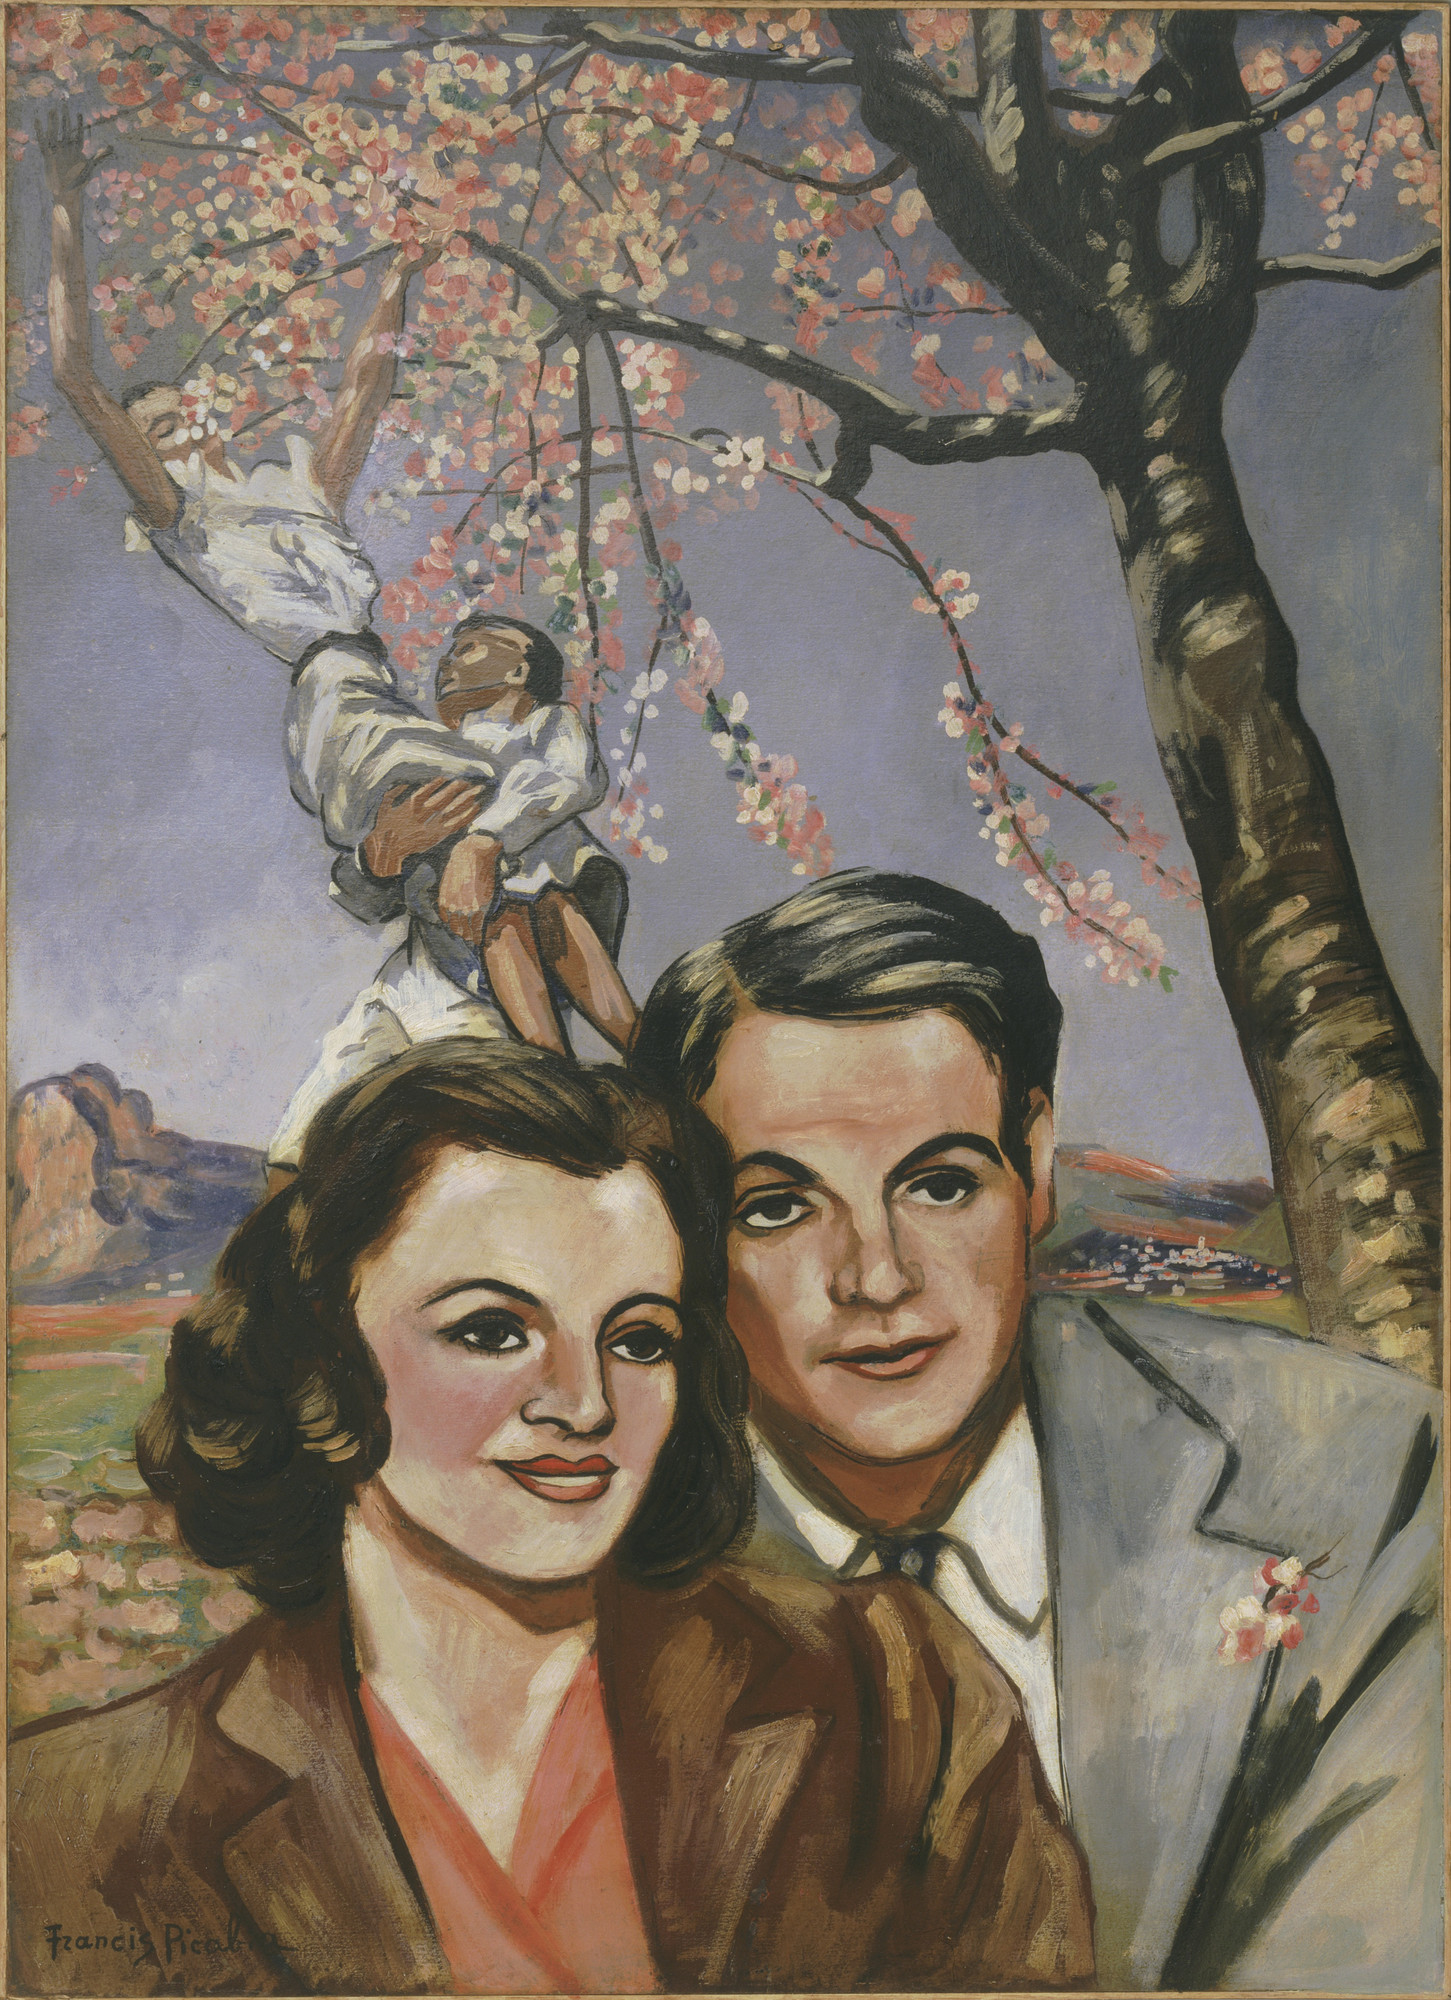 Francis Picabia. Portrait of a Couple. Golfe-Juan and/or Tourettes-sur-Loup, 1942-43